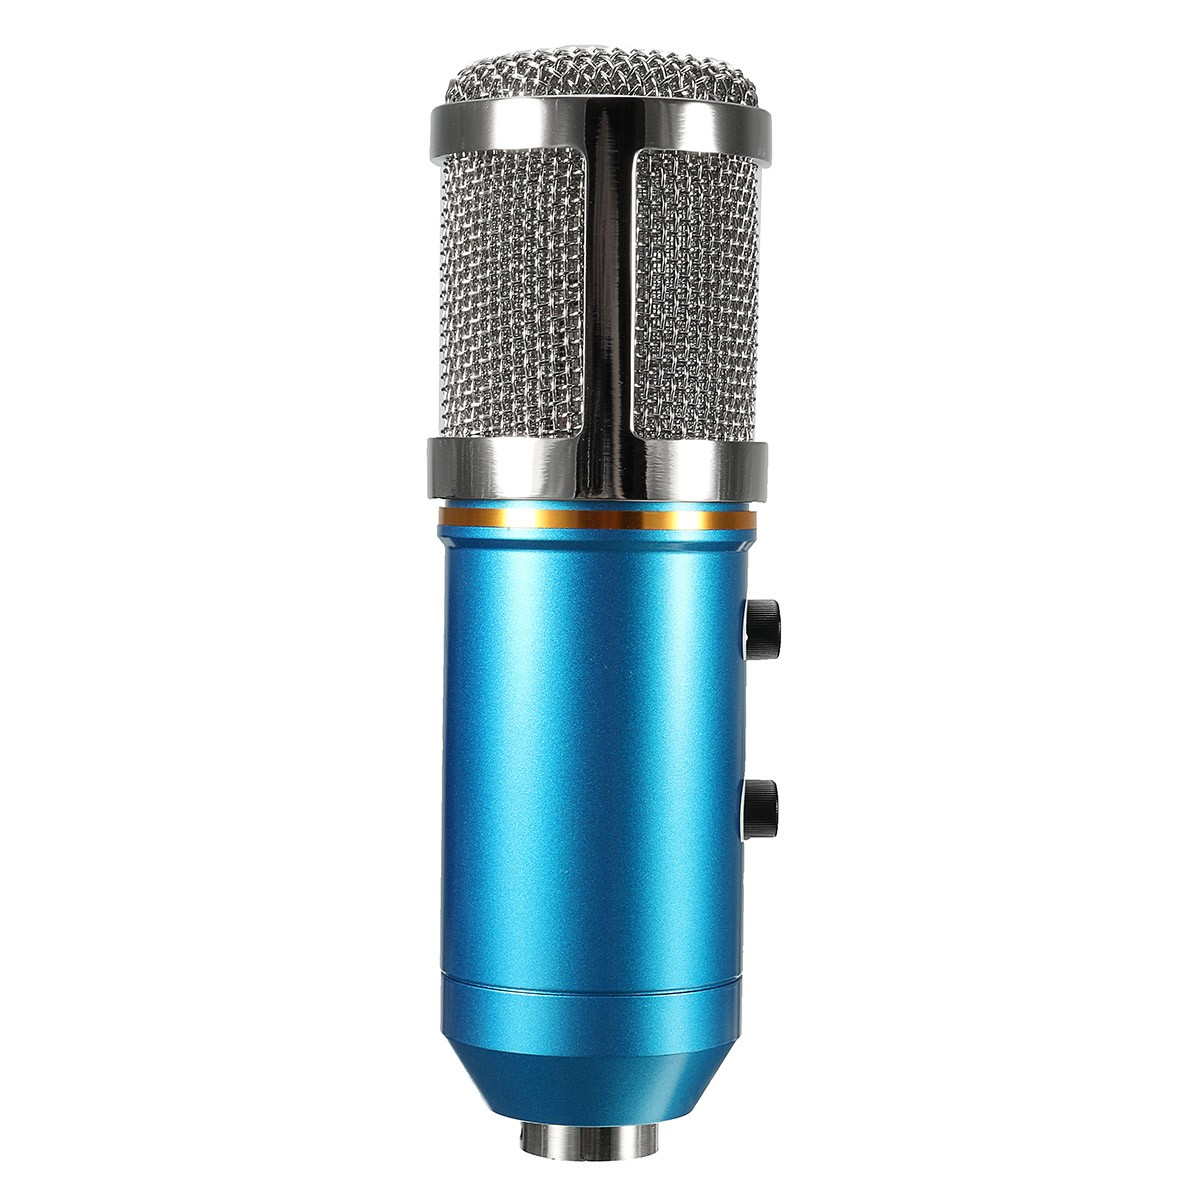 Mk F200tl Audio Usb Condenser Microphone Sound Recording Vocal Stand Mic Holder For 1 X Anti Wind Foam Cap More Detailed Photos Mount